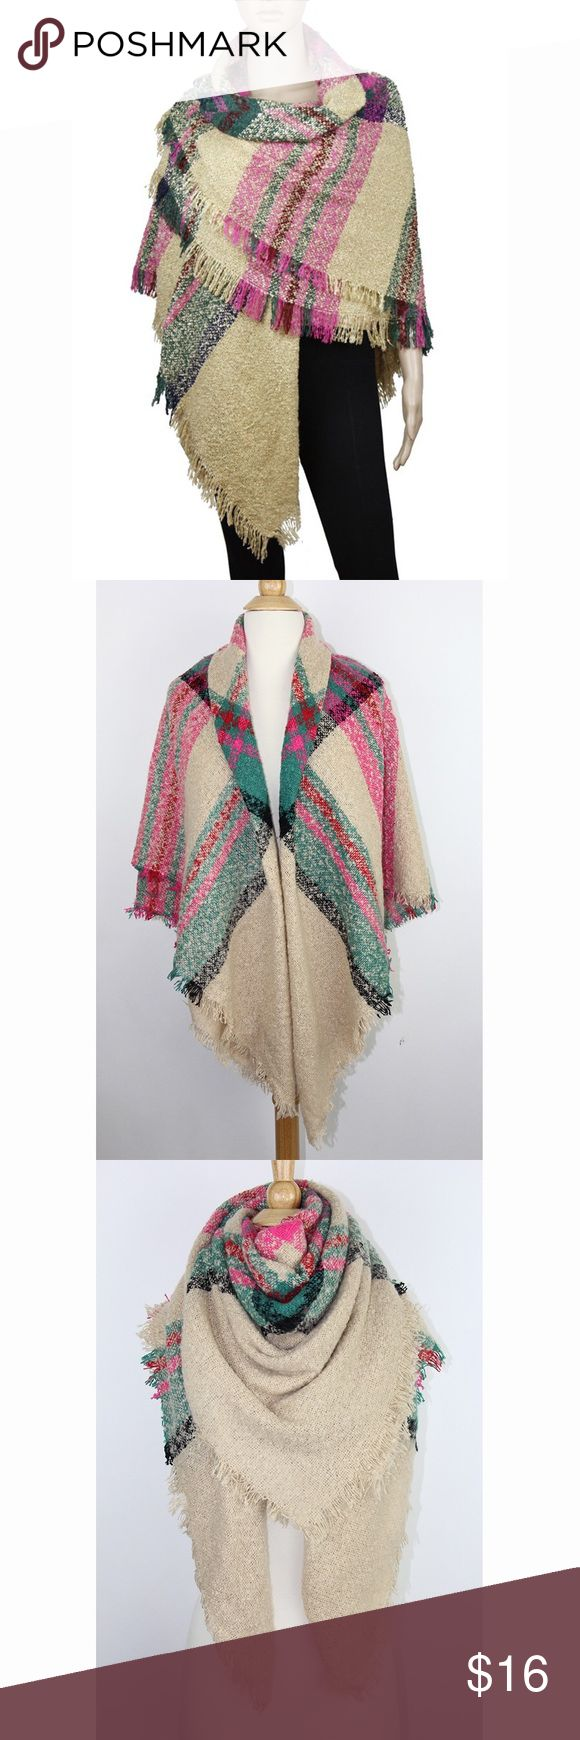 "Khaki Pink Extra Thick Tartan Plaid Blanket Scarf Material: 100% Acrylic, soft touch Weight: 7.65 oz Size: 57"" x 57"", large square wrap Oversized styling, check plaid tartan pattern, frayed ends Hand wash or dry clean only, do not bleach Accessories Scarves & Wraps"